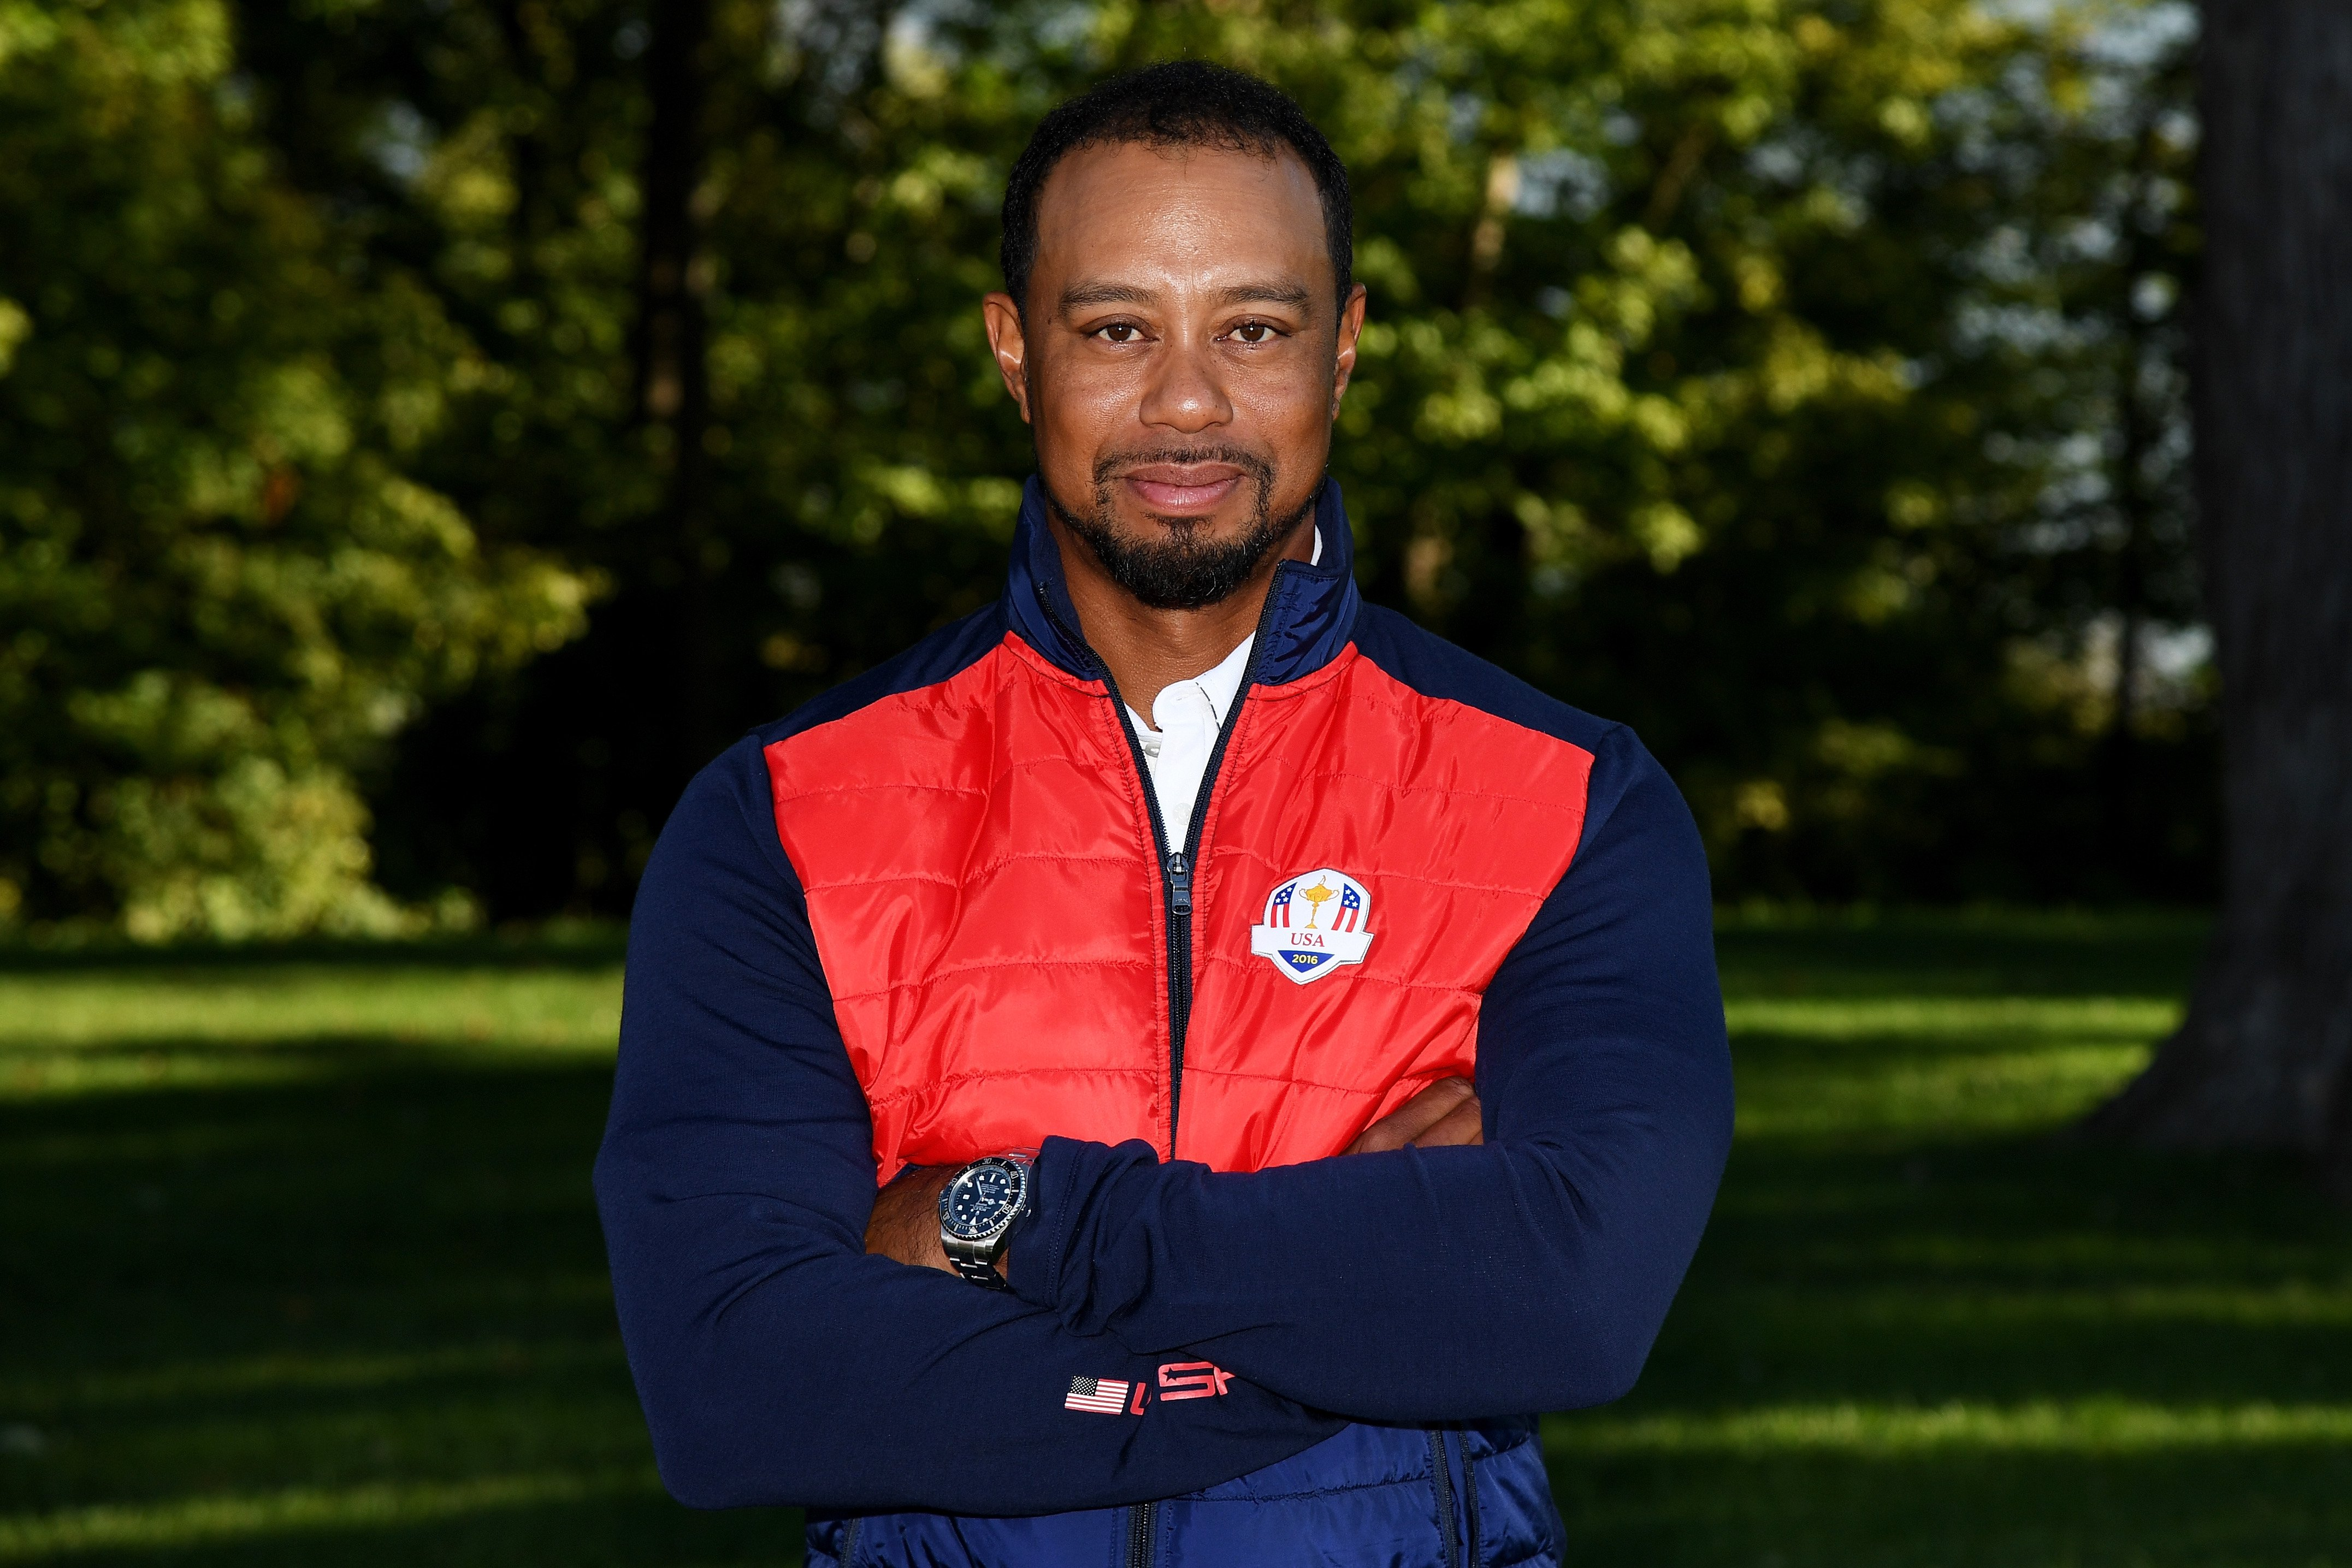 Image Credits: Getty Images / Ross Kinnaird | Vice-captain Tiger Woods of the United States poses during team photocalls prior to the 2016 Ryder Cup at Hazeltine National Golf Club on September 27, 2016 in Chaska, Minnesota.